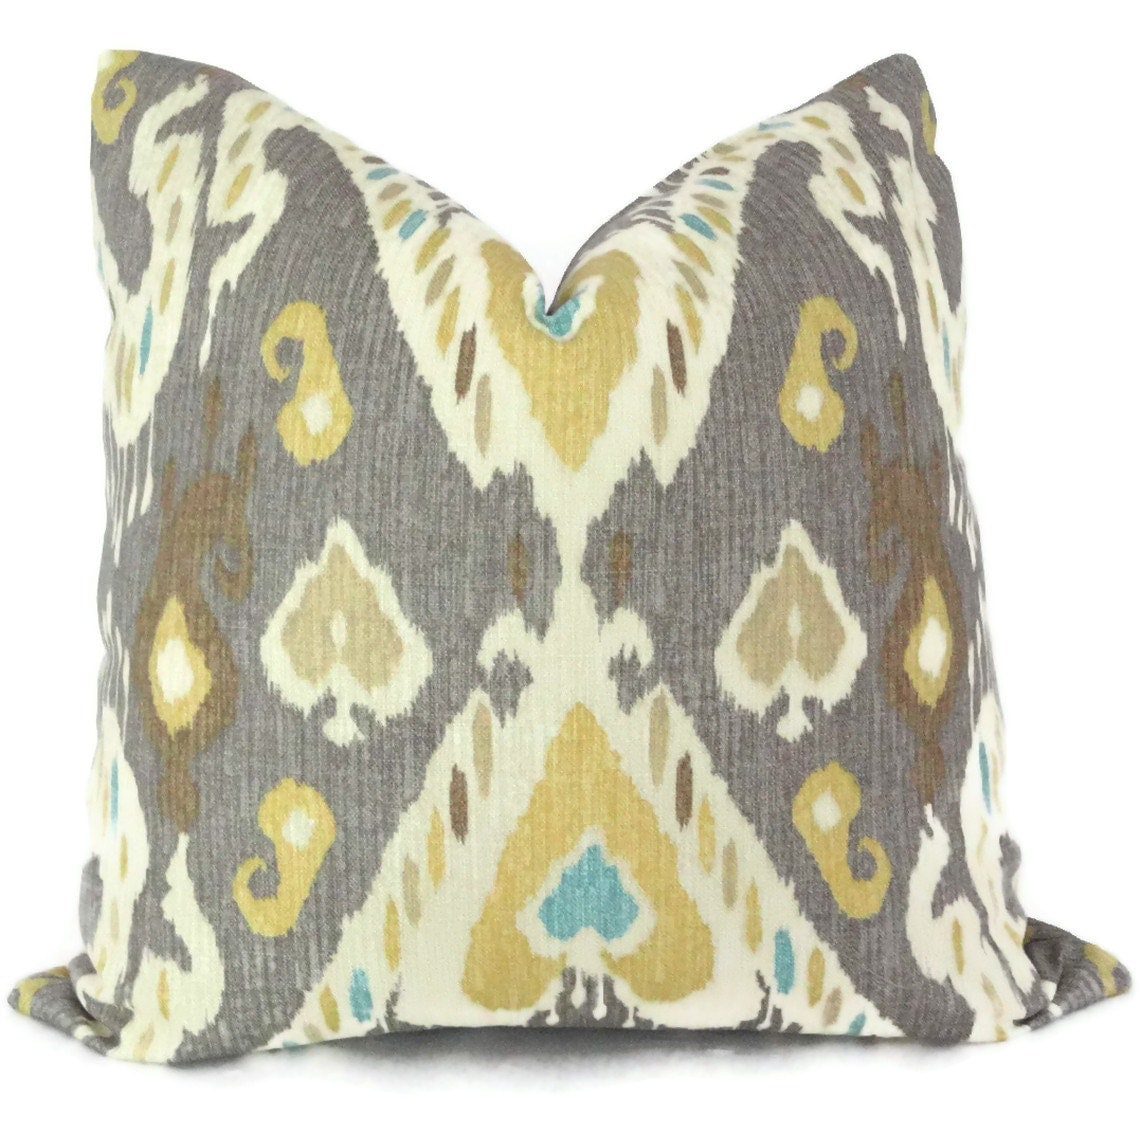 Ikat Throw Pillows Etsy : Yellow and Gray Ikat Decorative Pillow Cover Square by PopOColor